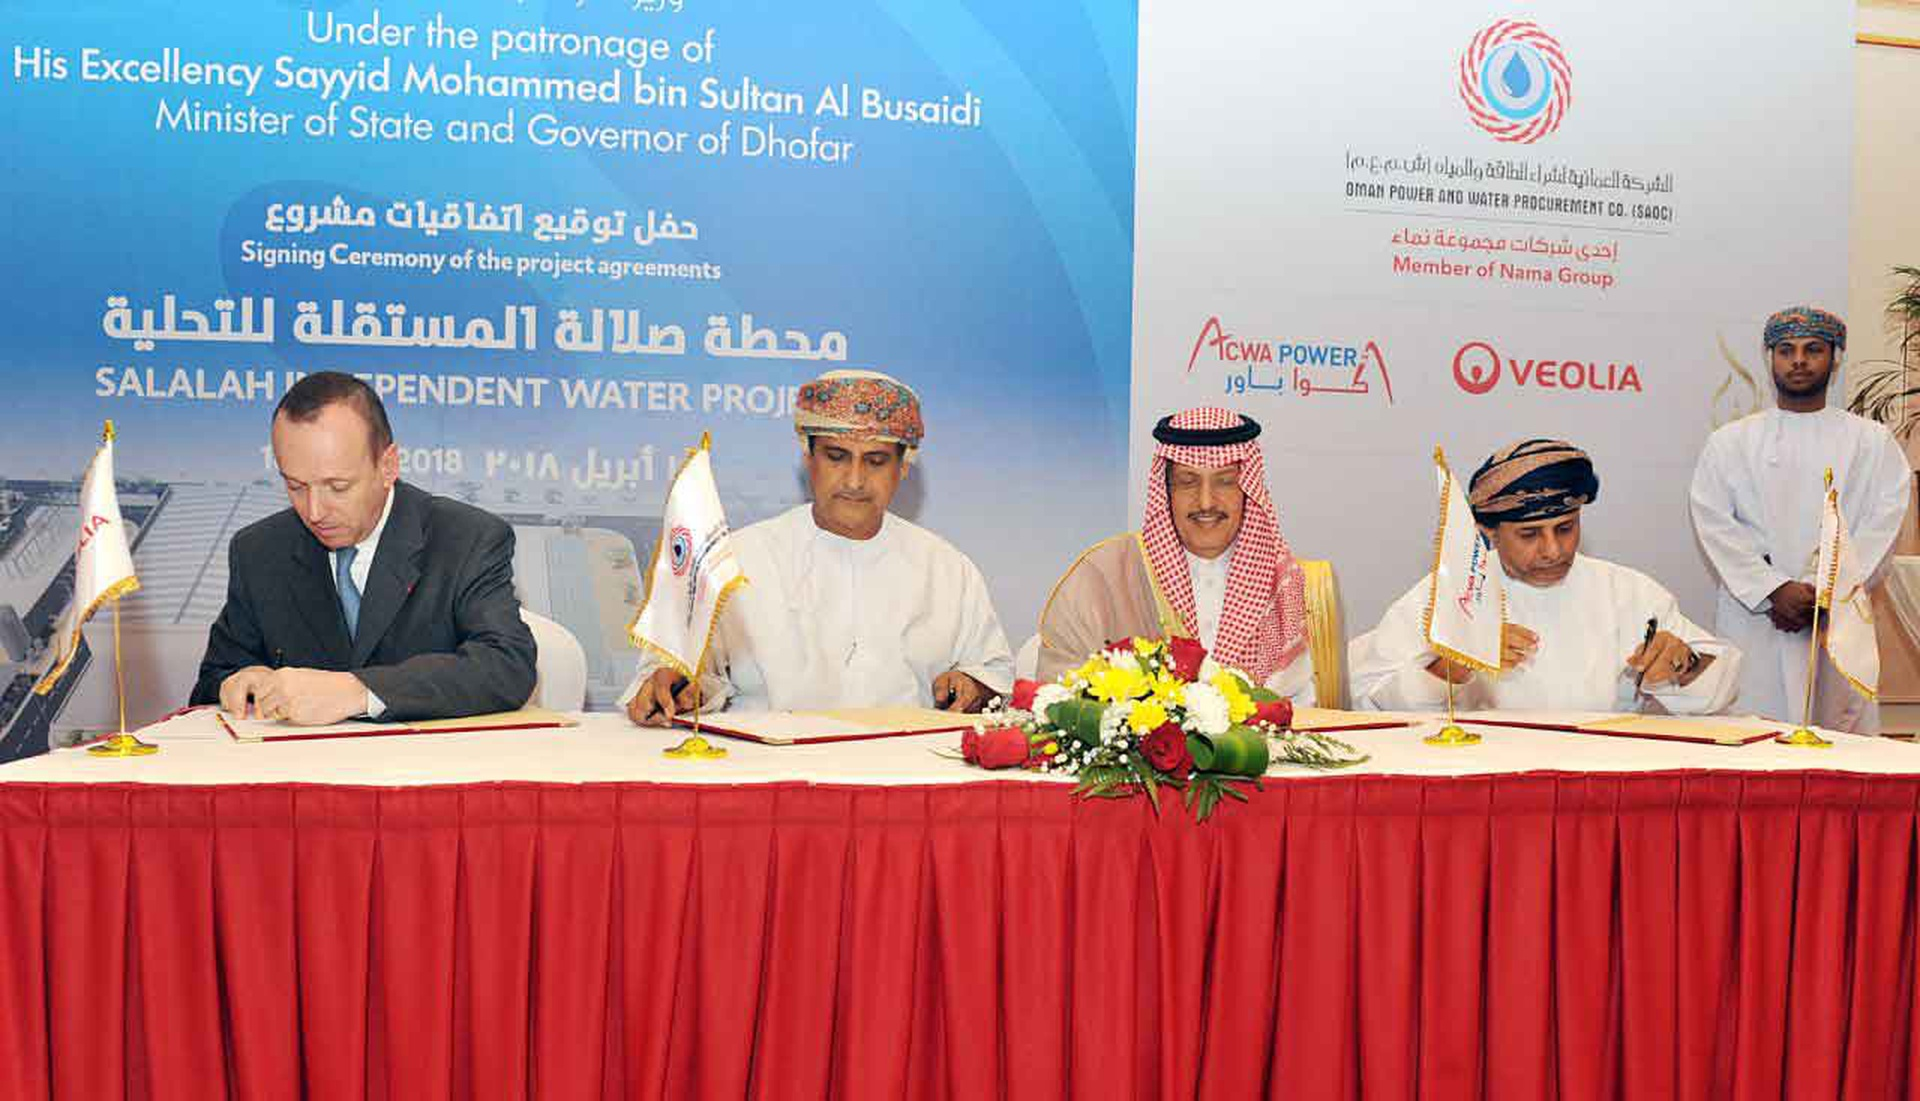 Oman Power and Water Procurement Company signed agreement to develop